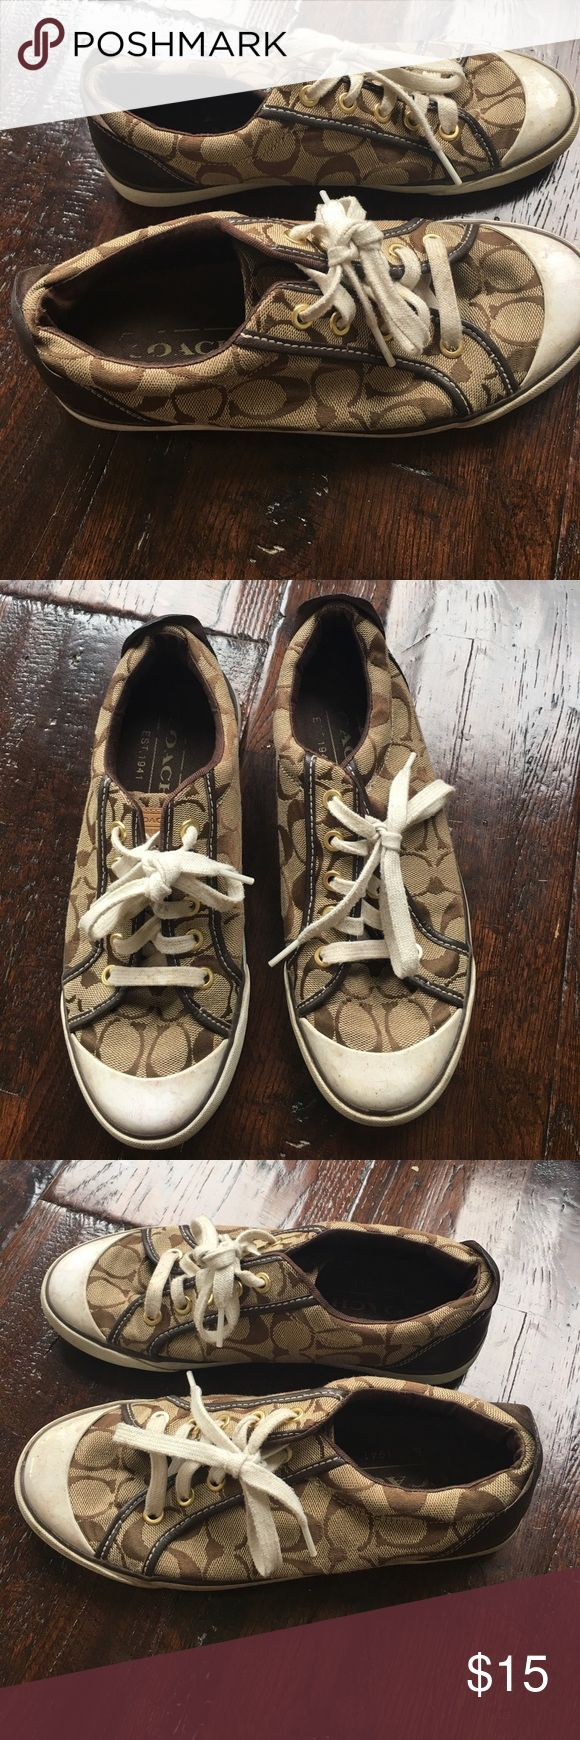 Coach Tennis Shoes Women's Coach Tennis Shoes. Good condition. Some marks on toe and sides. LOTS of wear left. Coach Shoes Sneakers